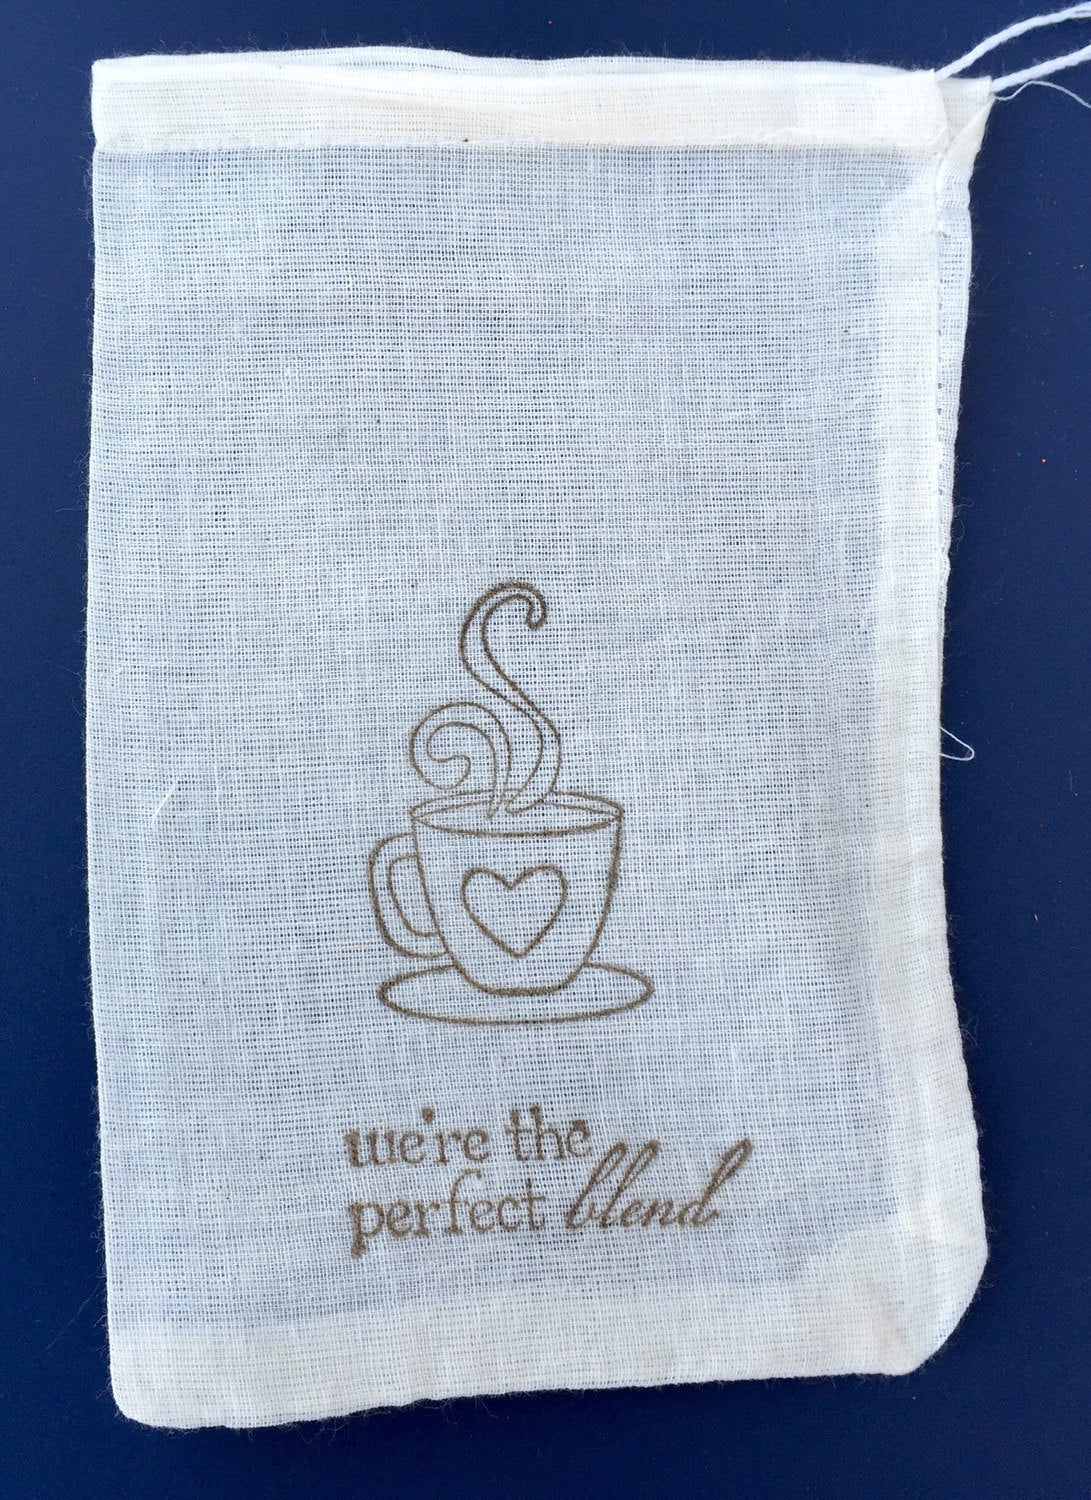 10 coffee wedding favor bags, wedding welcome bags, coffee bags, coffee wedding favors